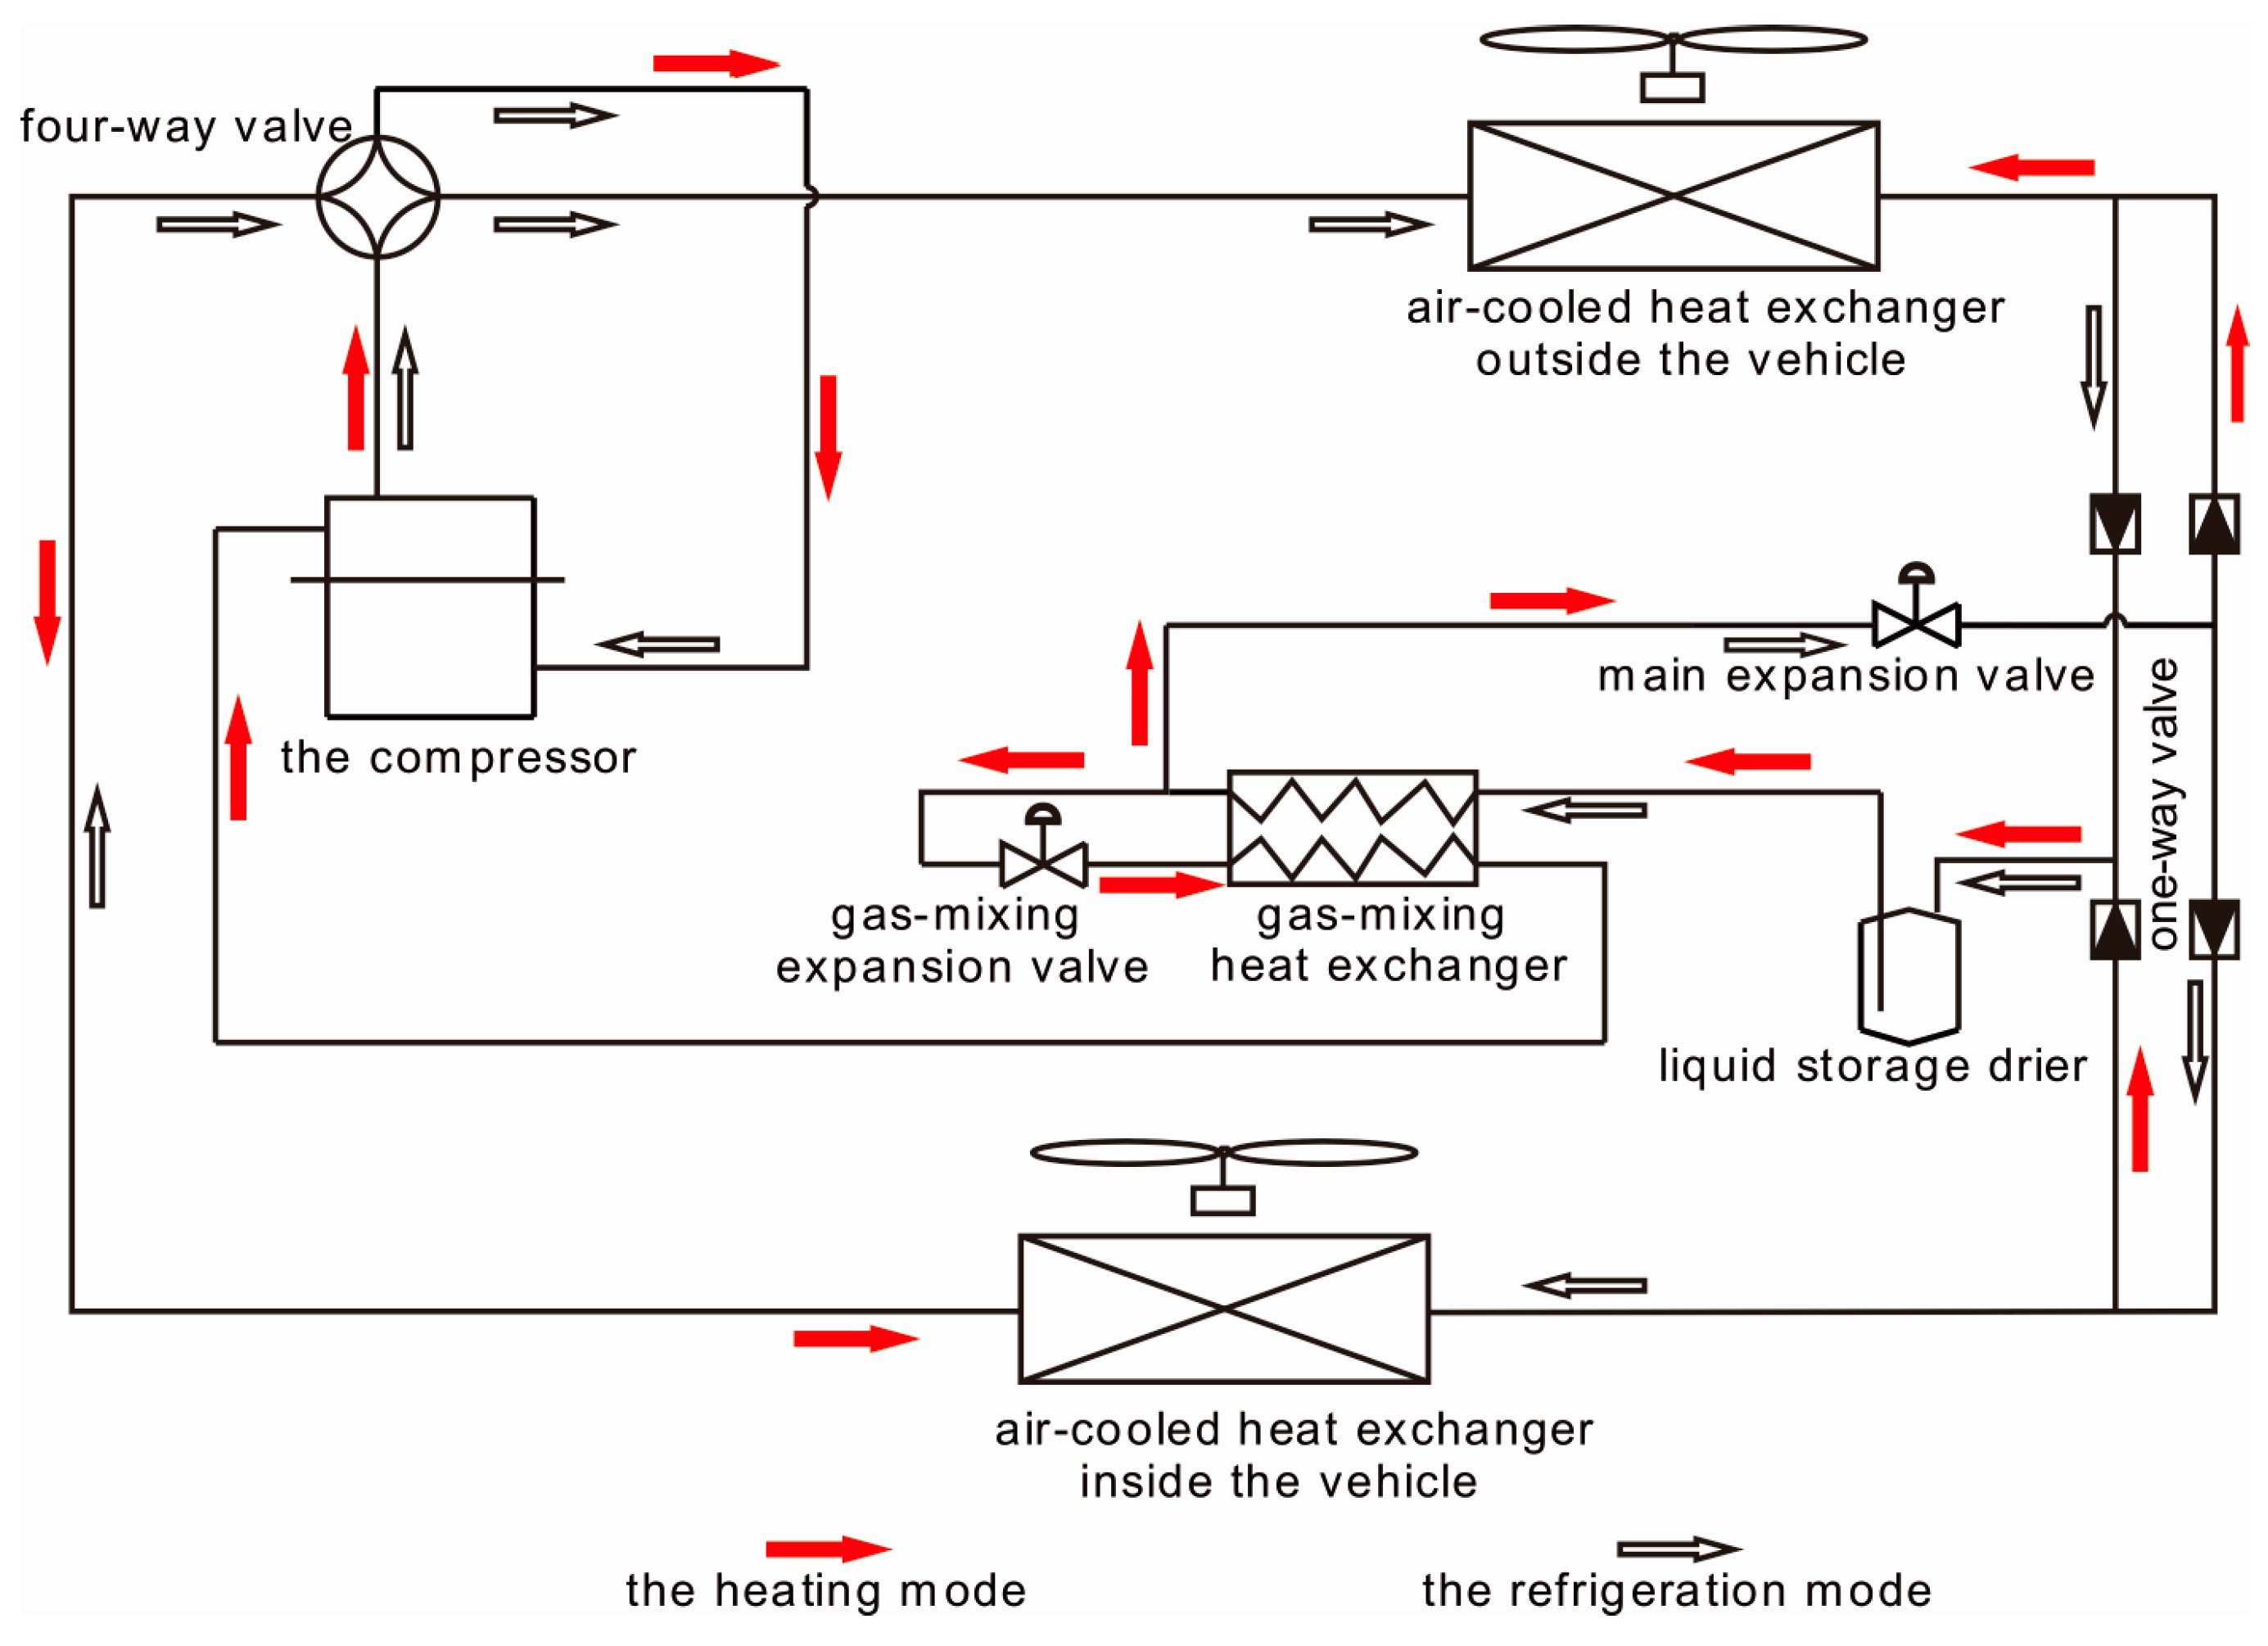 Automobile Ac System Diagram In Vehicle Wiring Diagrams Automotive Energies Free Full Text Of